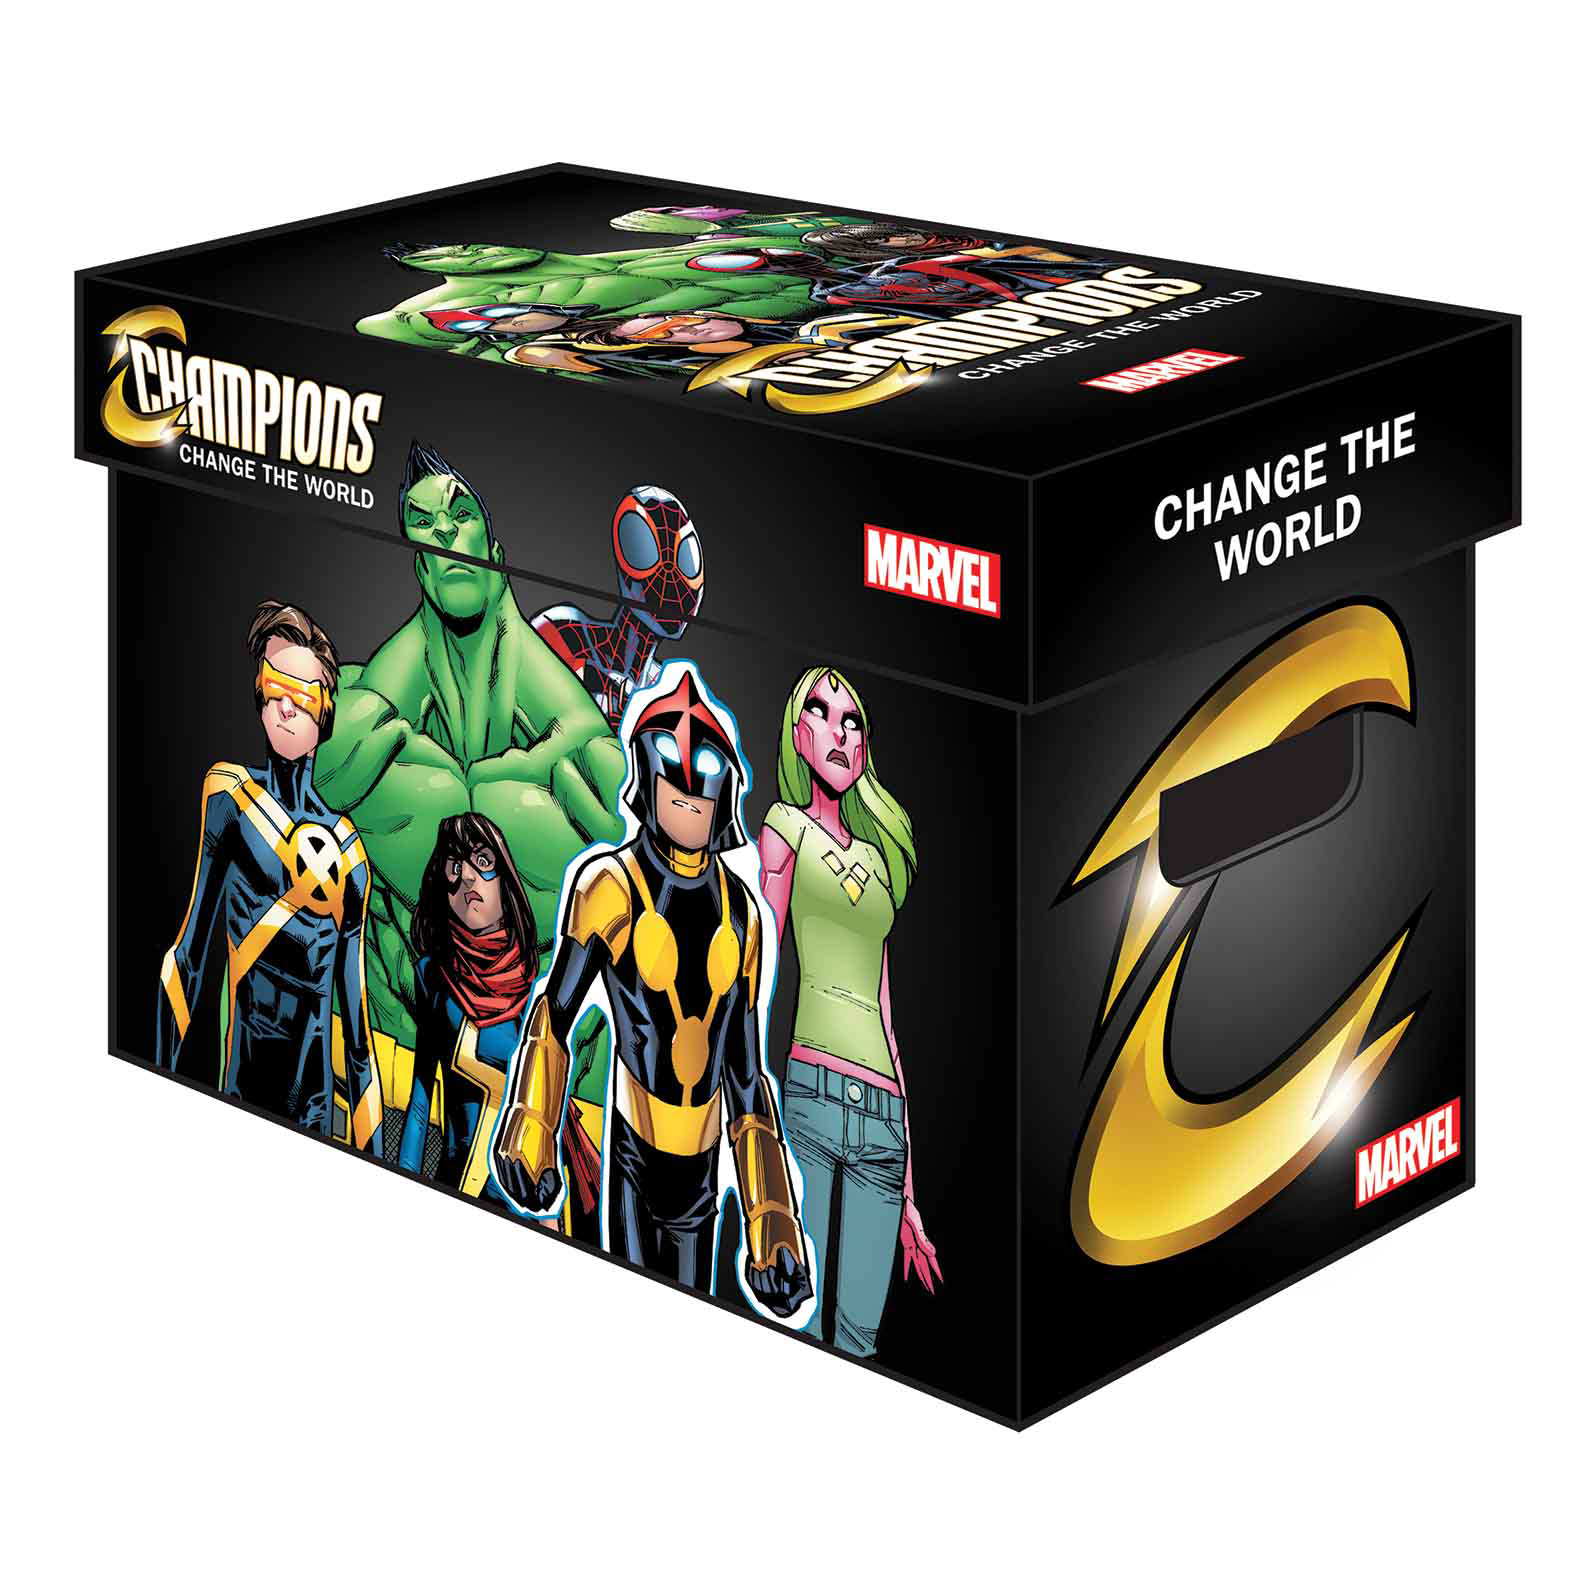 MARVEL GRAPHIC COMIC BOXES CHAMPIONS (BUNDLE OF 5) (Net)